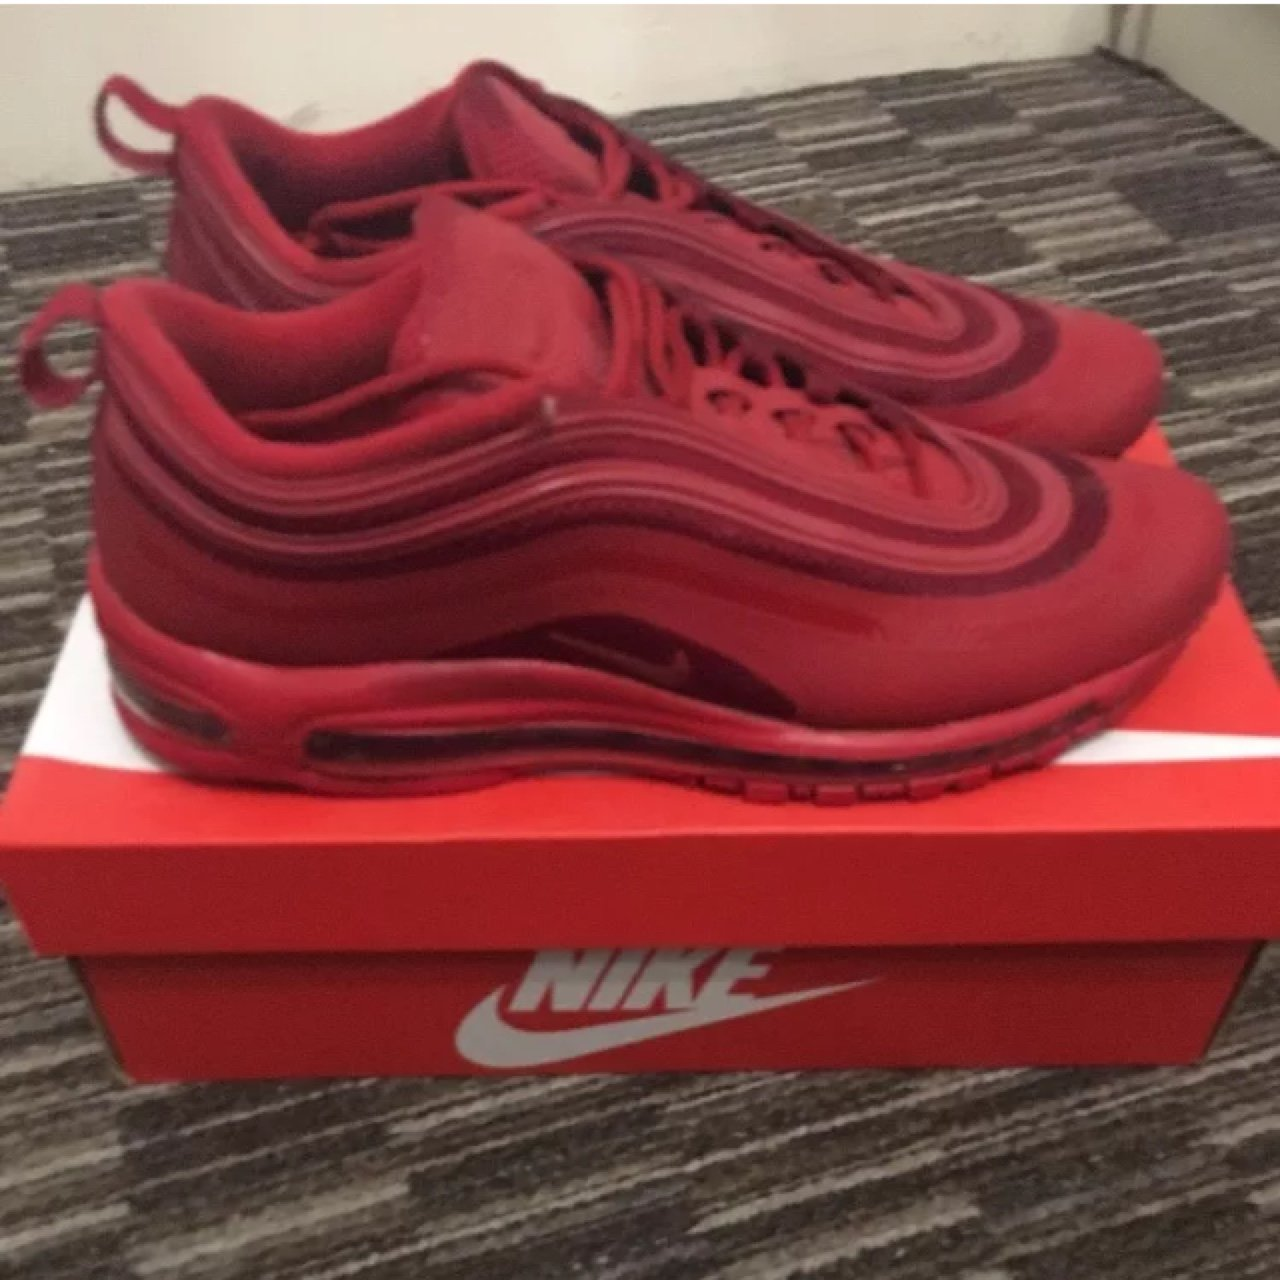 Nike Air Max 97 Hyperfuse Gym Red UK 9.5 Very good overall a7ae2e178